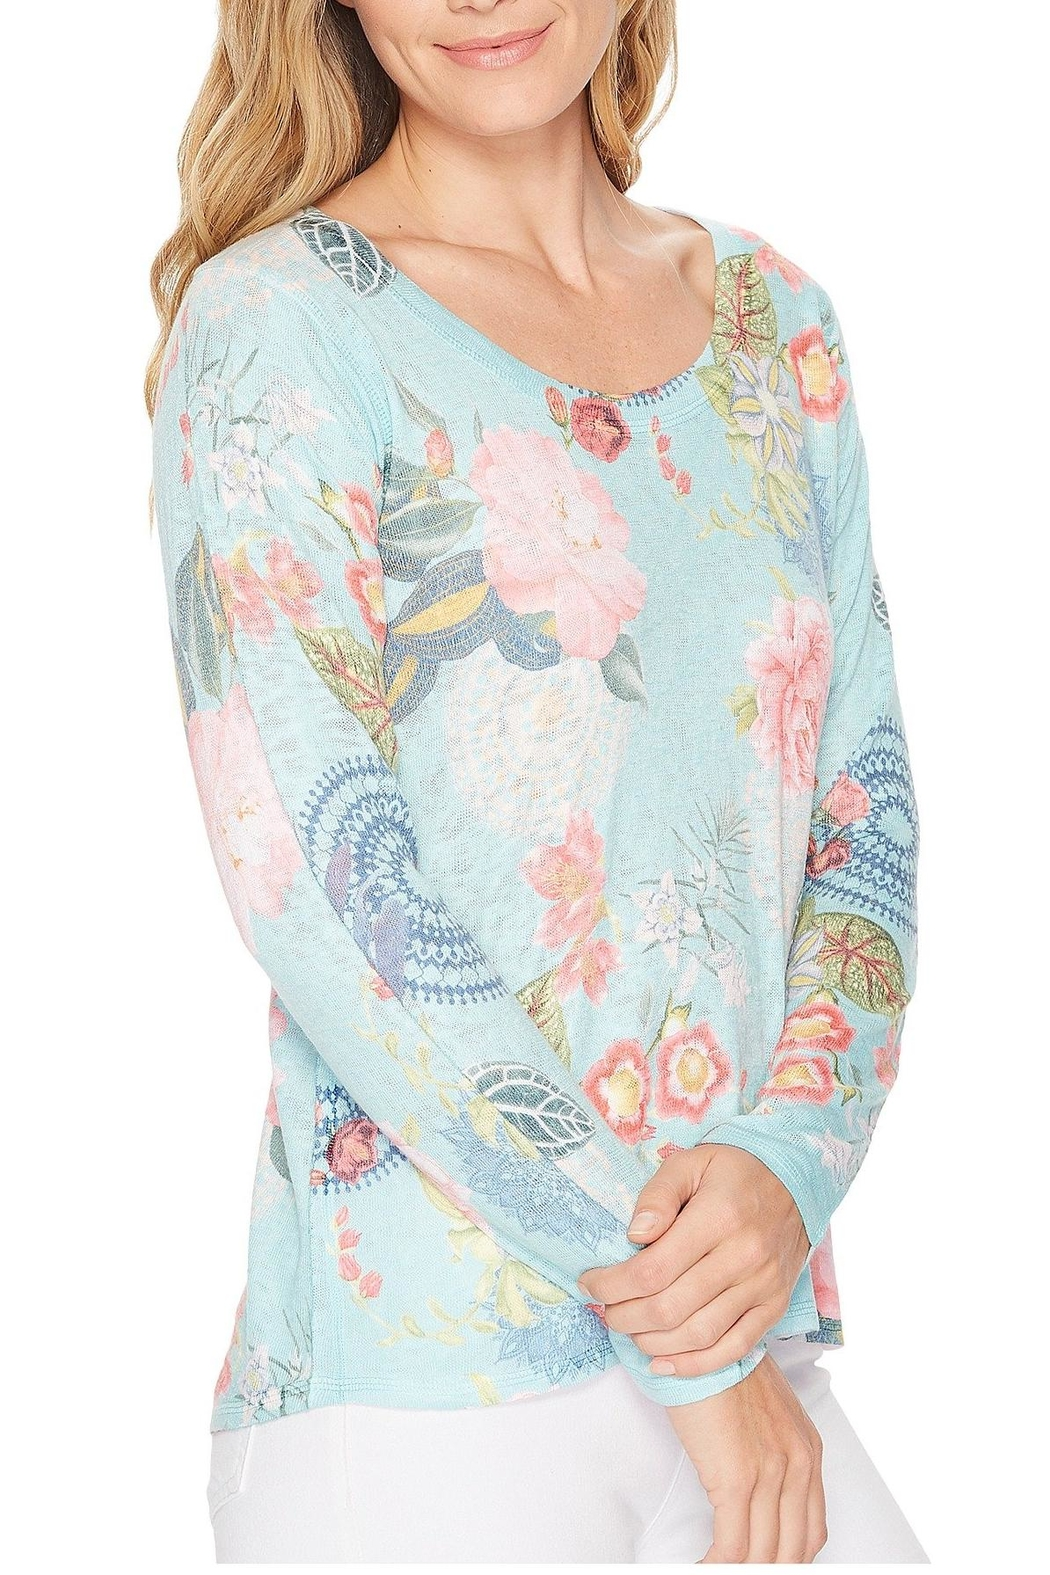 Nally & Millie Floral Print Top - Main Image